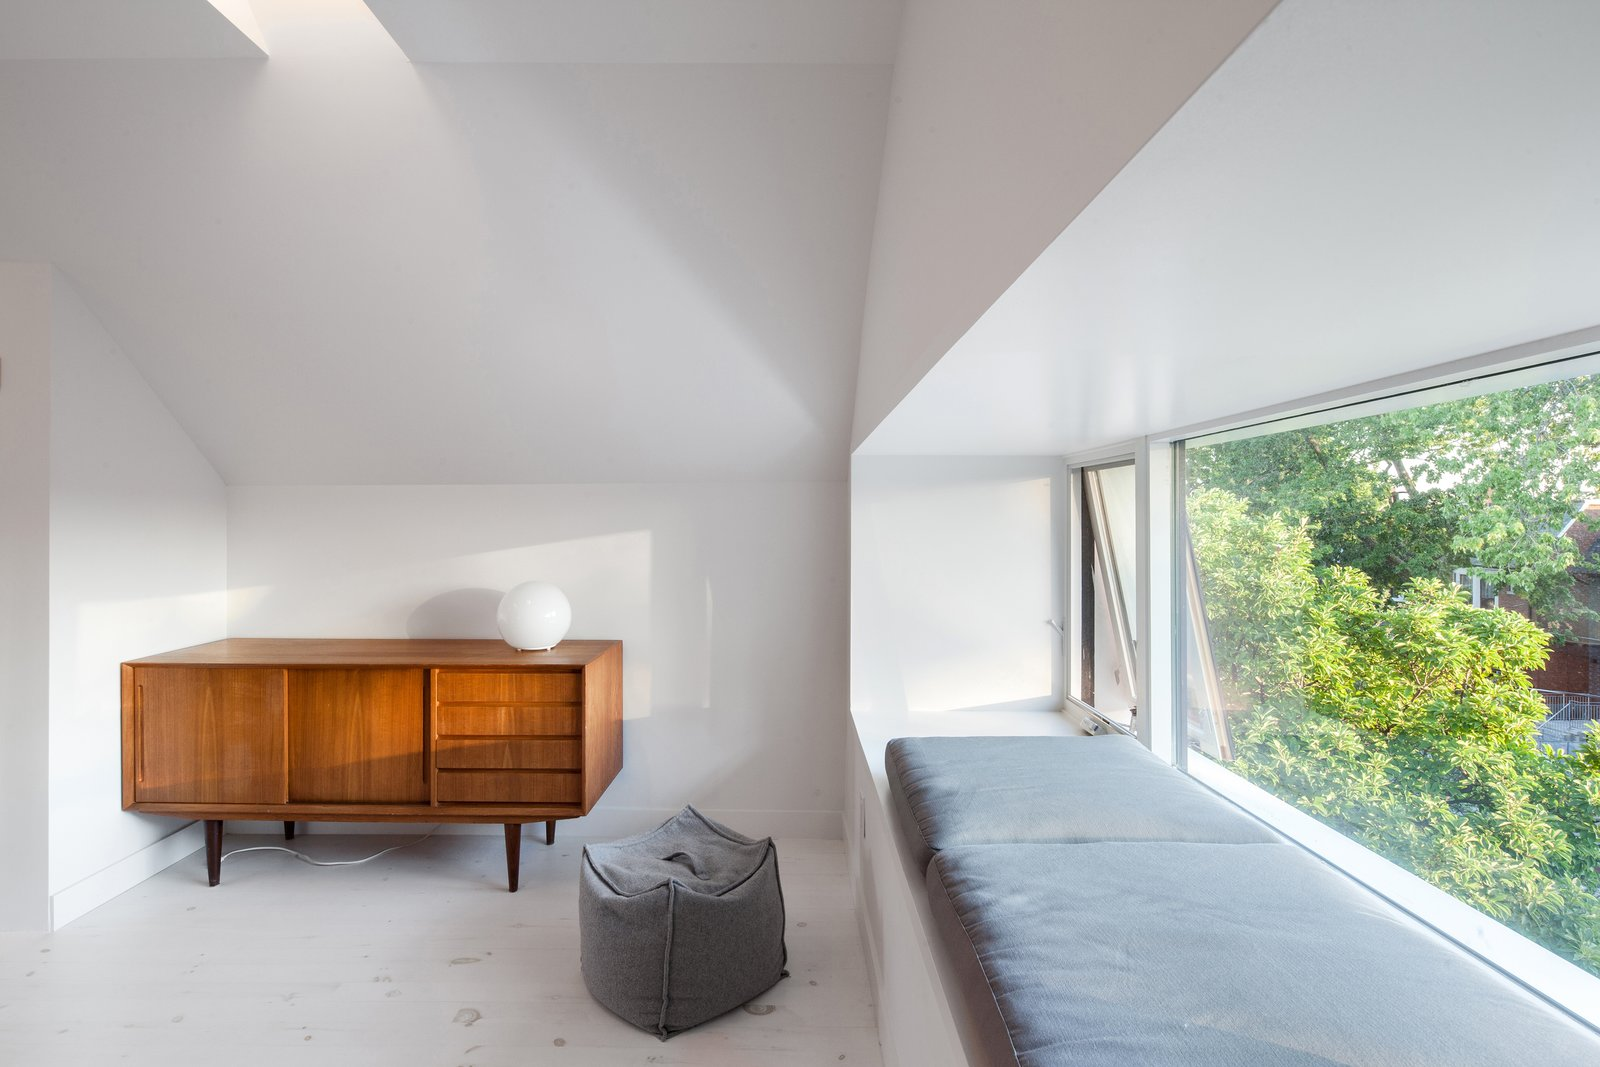 Living Room, Console Tables, Ottomans, Light Hardwood Floor, Bench, and Table Lighting Window  nook overlooking neighbourhood trees and street  House Grace by uoai studio